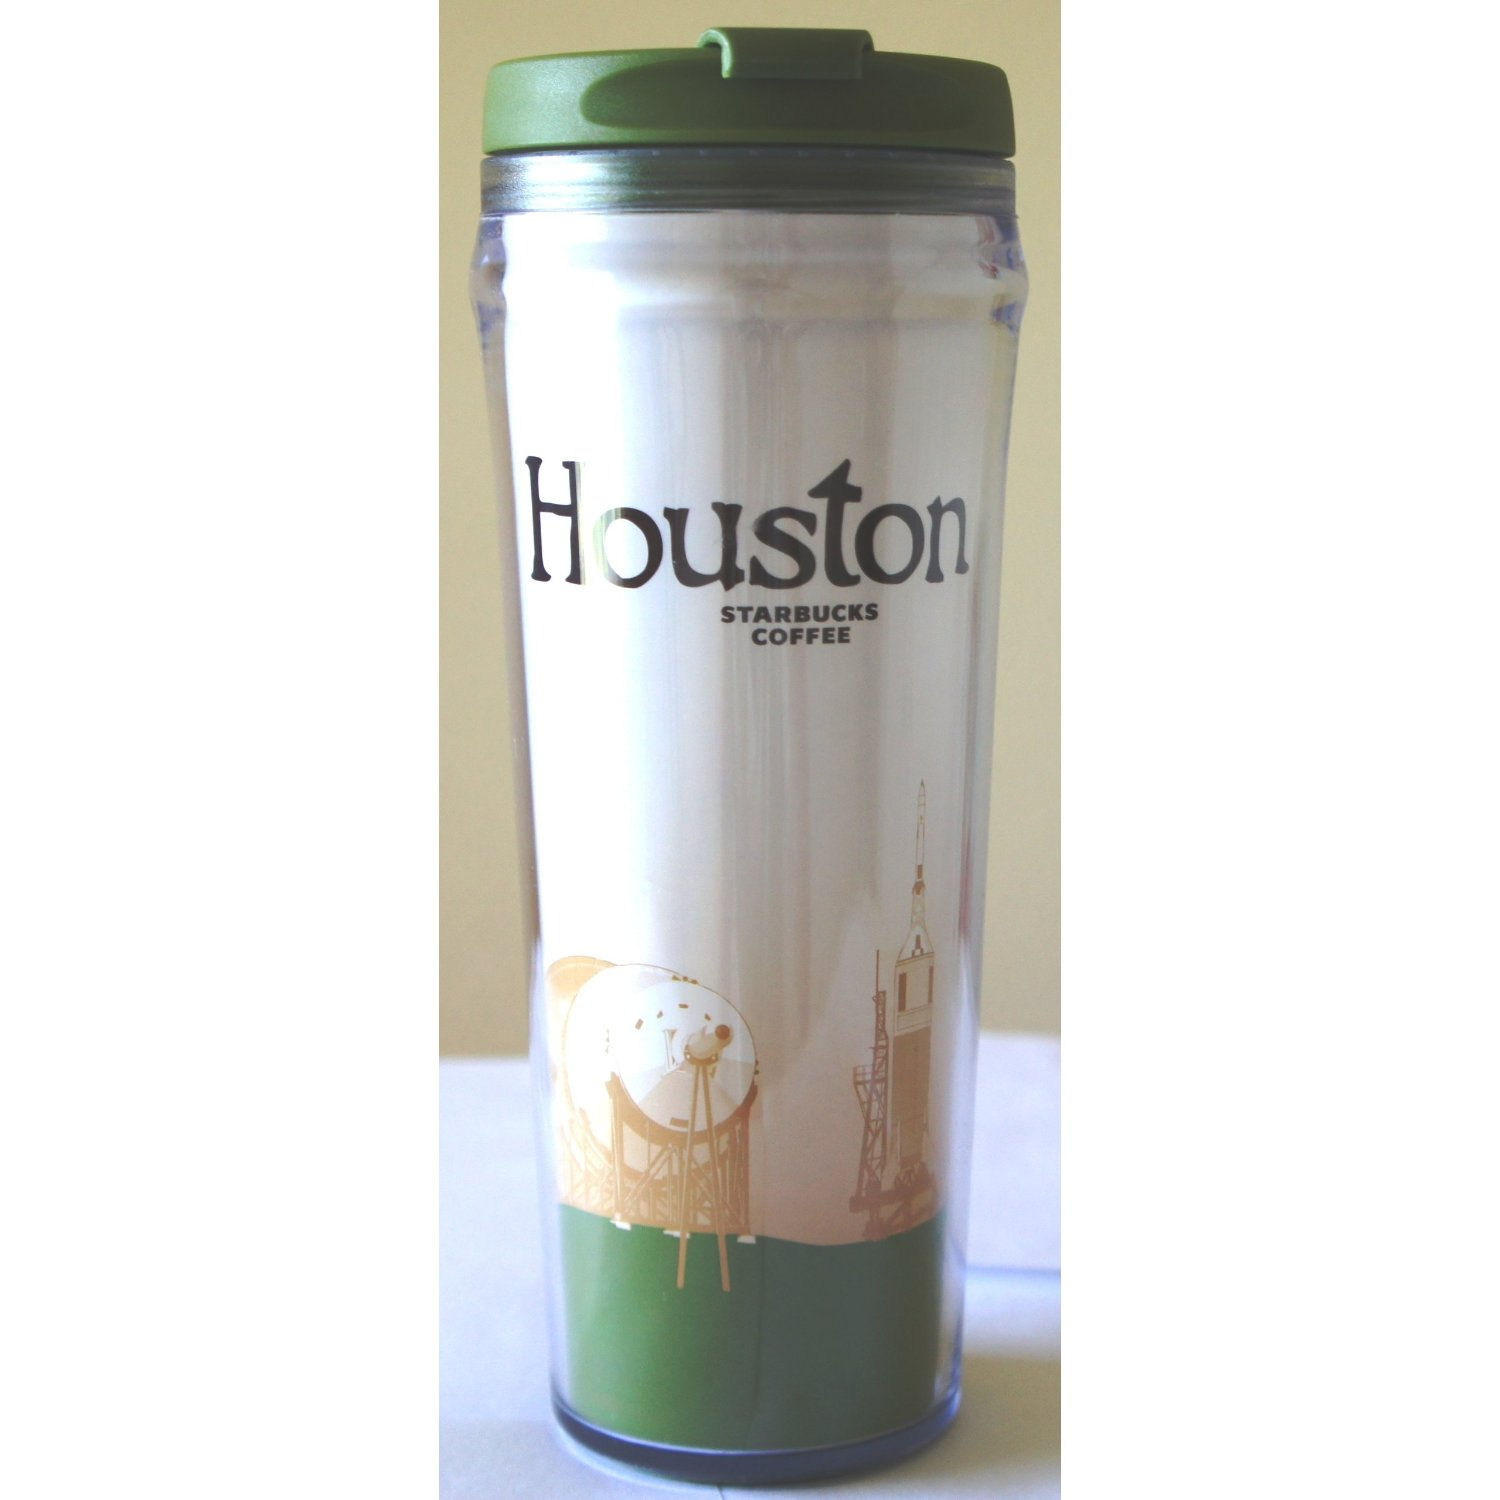 Houston Tumbler | Starbucks City Mugs